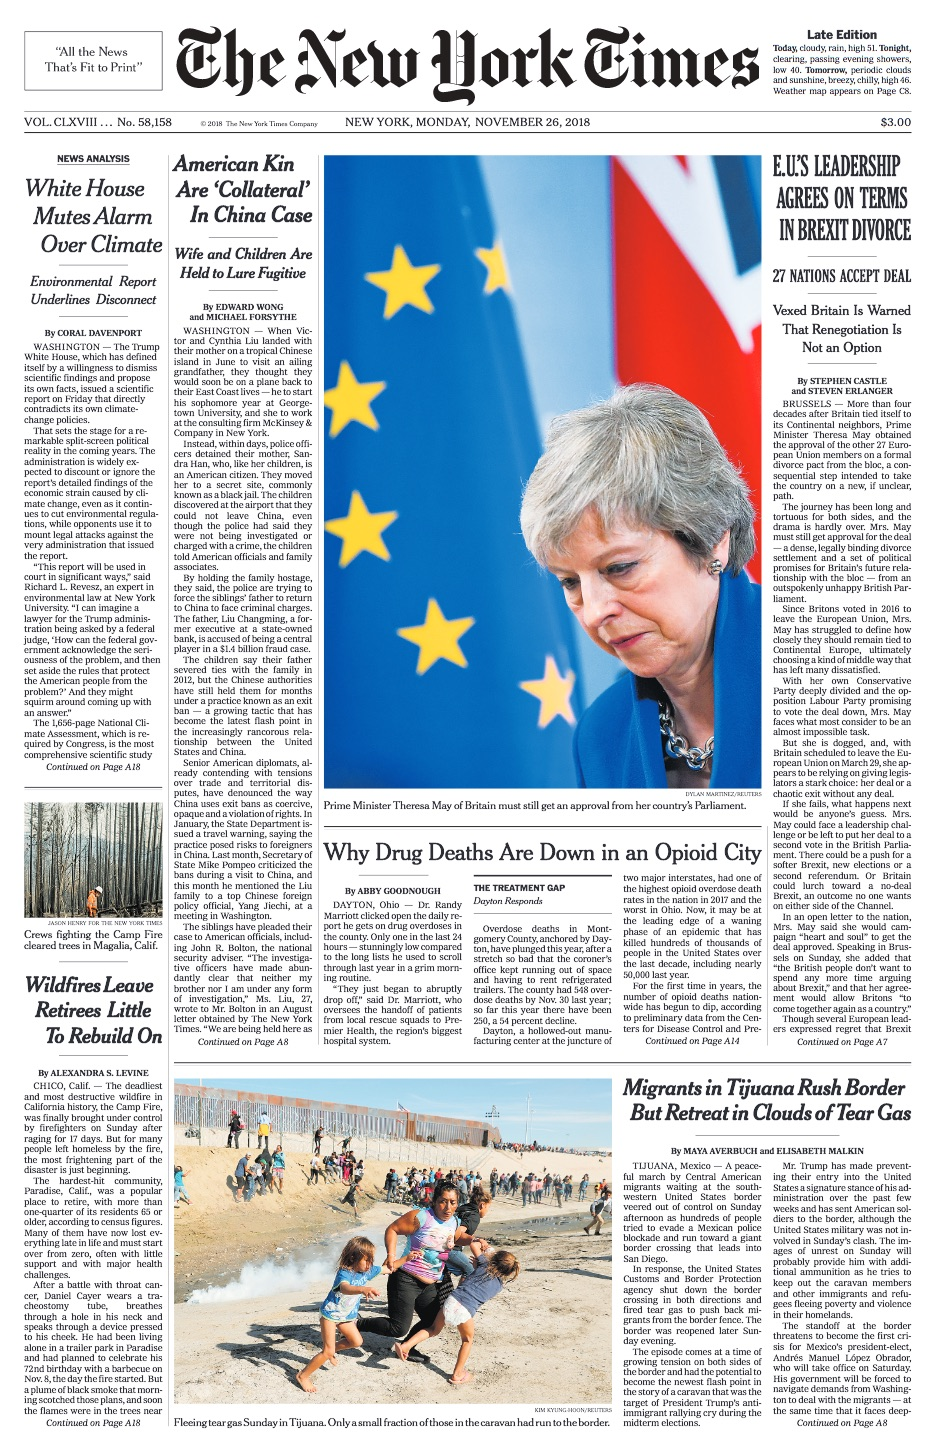 NYT_FrontPage_112618.jpg